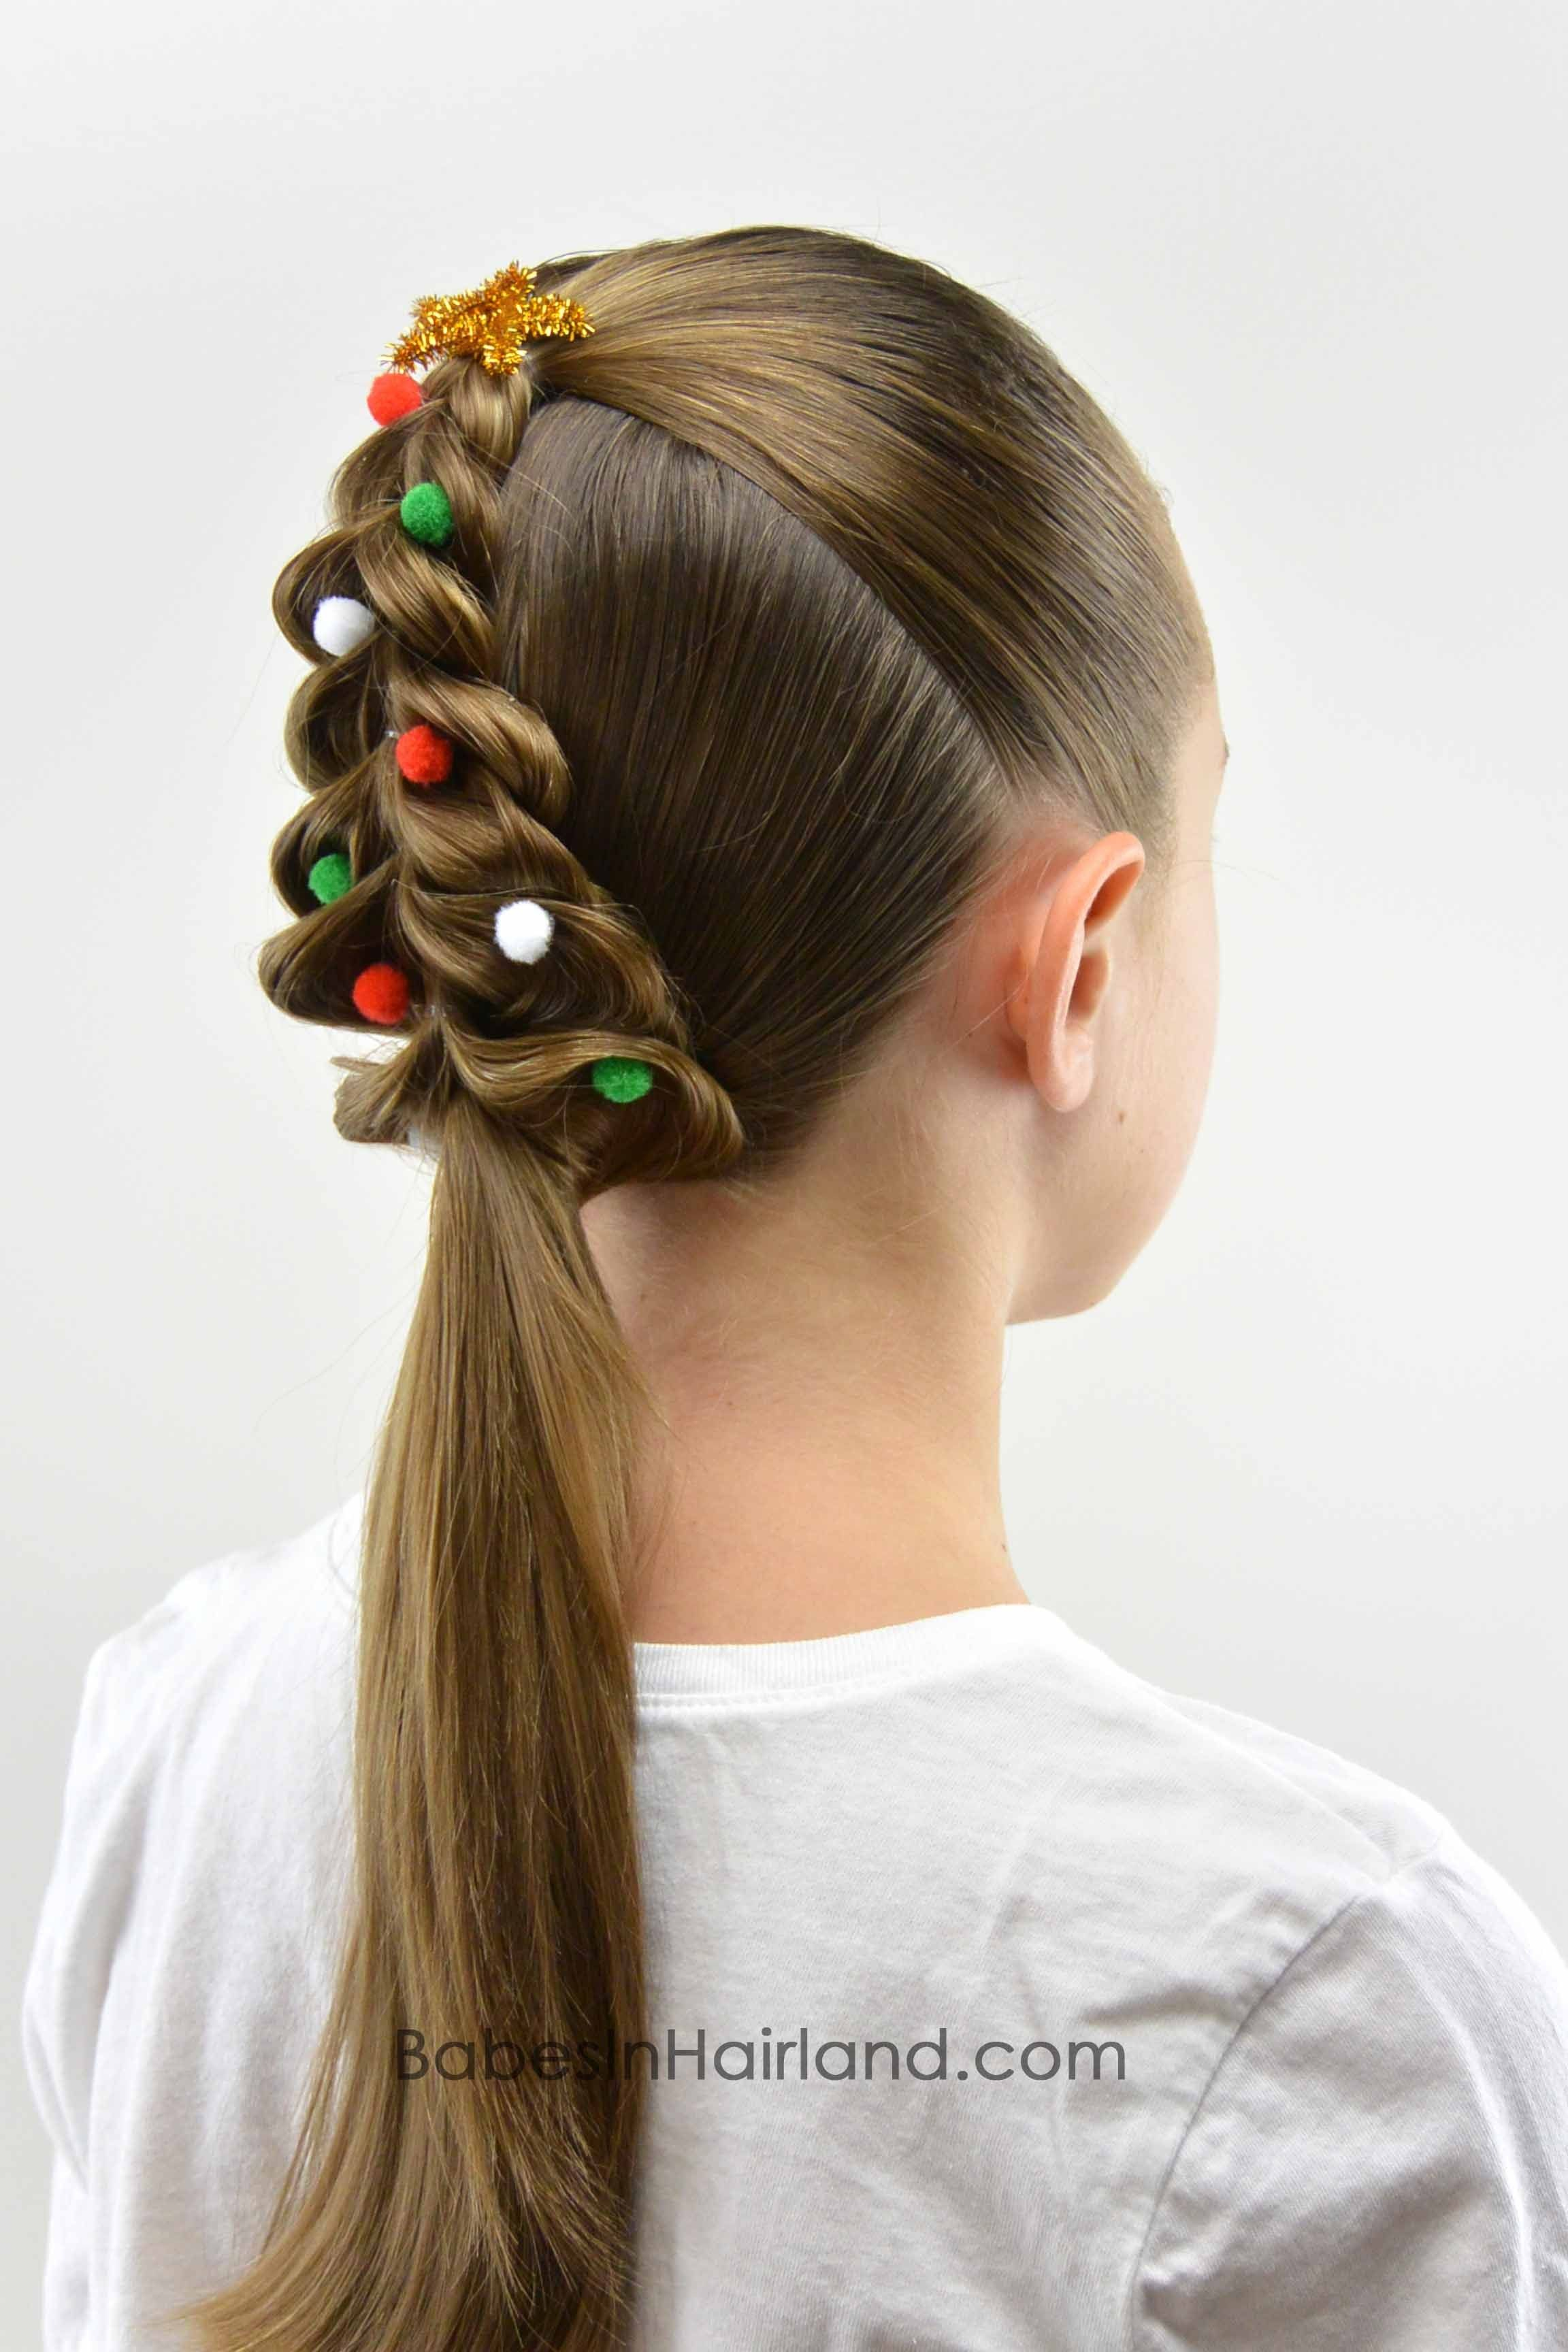 Pin On Hair Christmas Hairstyles